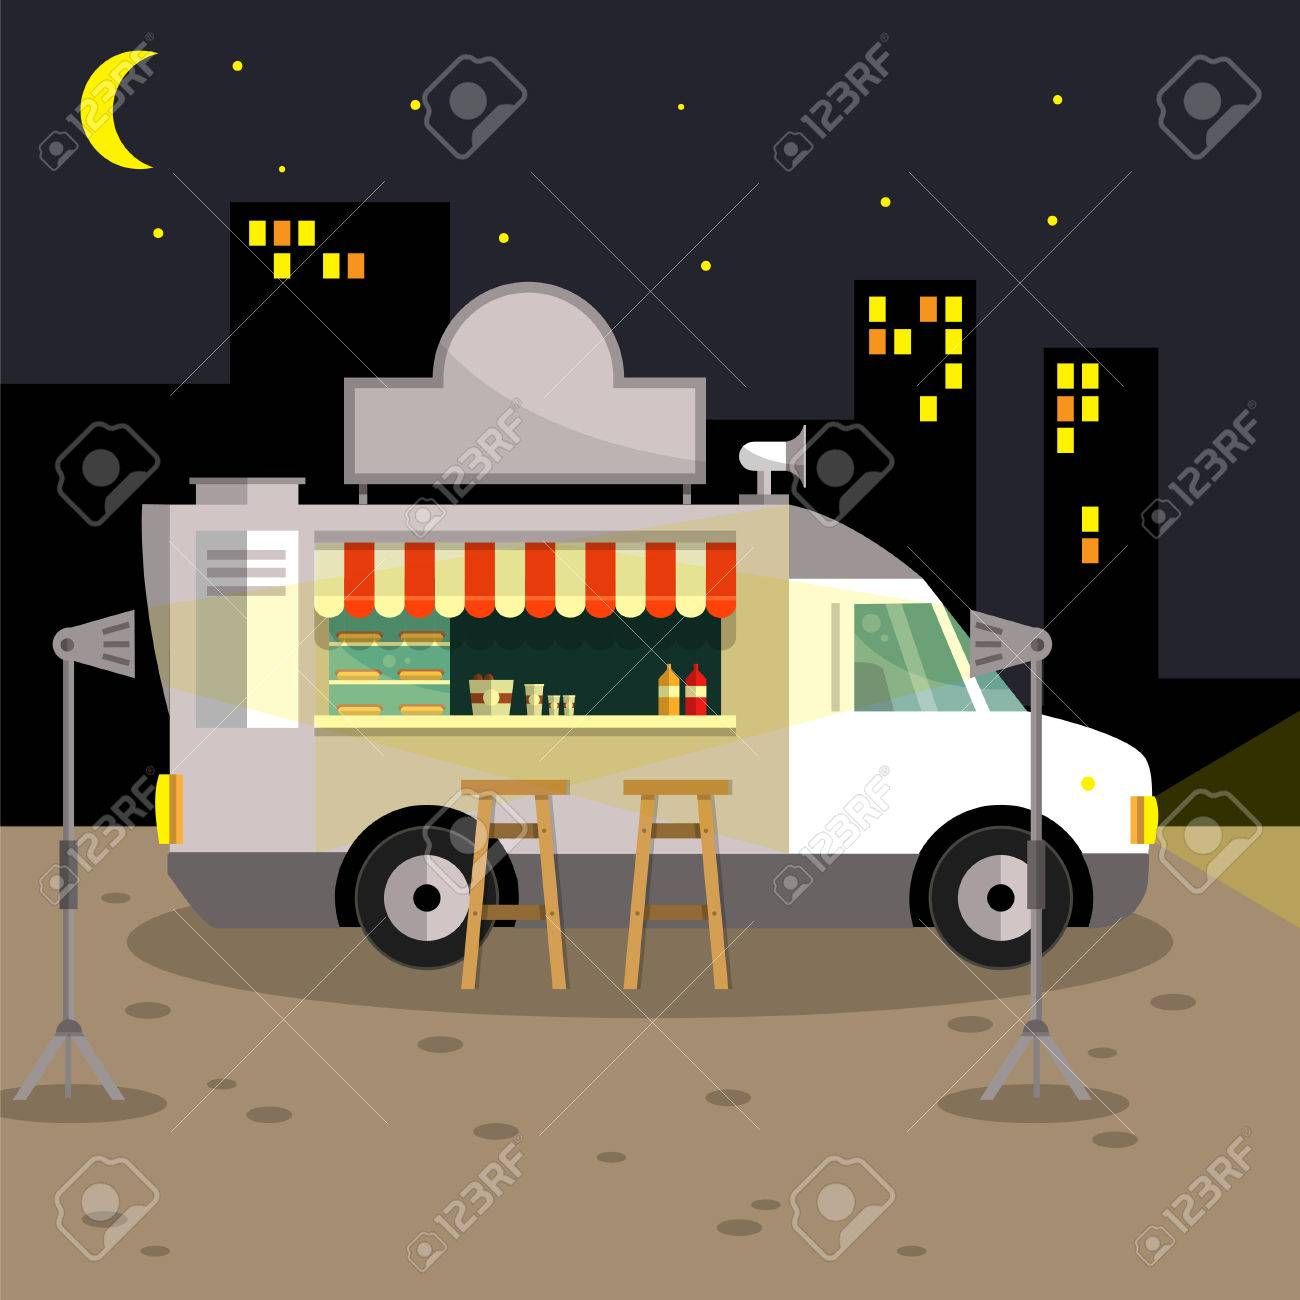 The American Hot Dog A Truck With A Kitchen Car For Sale Fast Royalty Free Cliparts Vectors And Stock Illustration Image 69194546